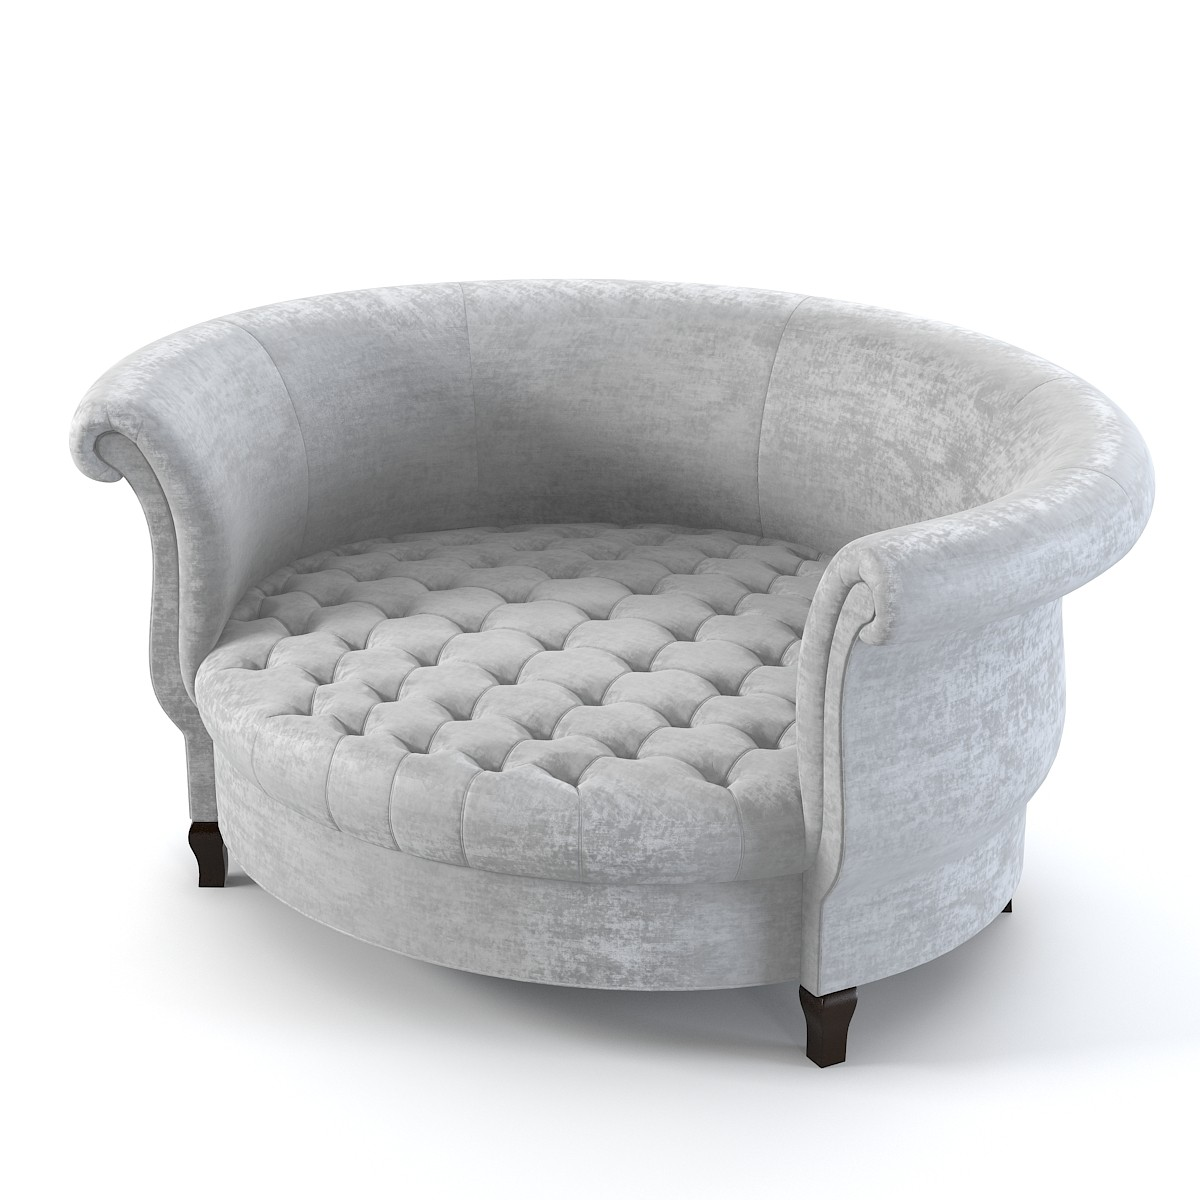 Attractive Cannon Swivel cuddle chair with cushion and for your Beautiful Living Room Ideas